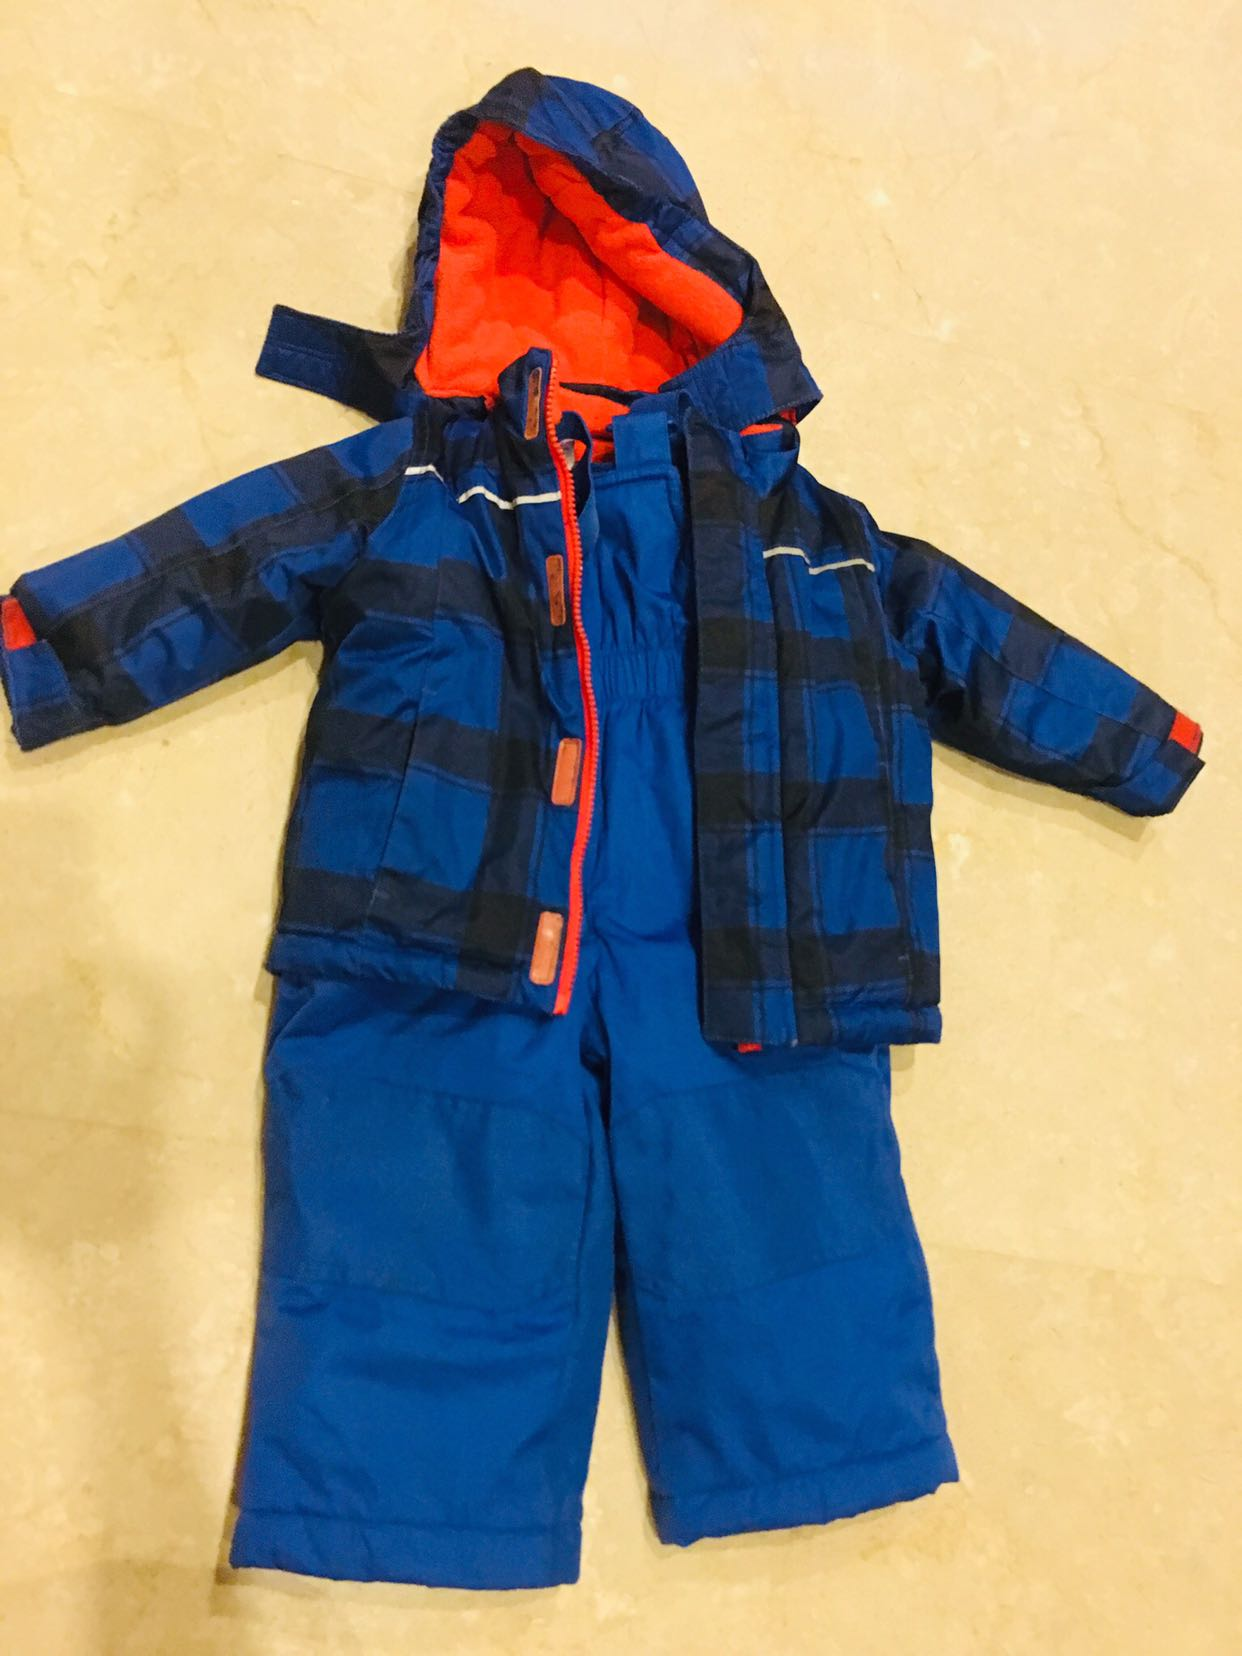 84be9ba09a06 Boys   Baby Boy Winter Jacket full Ski Suit Set 12-18 months